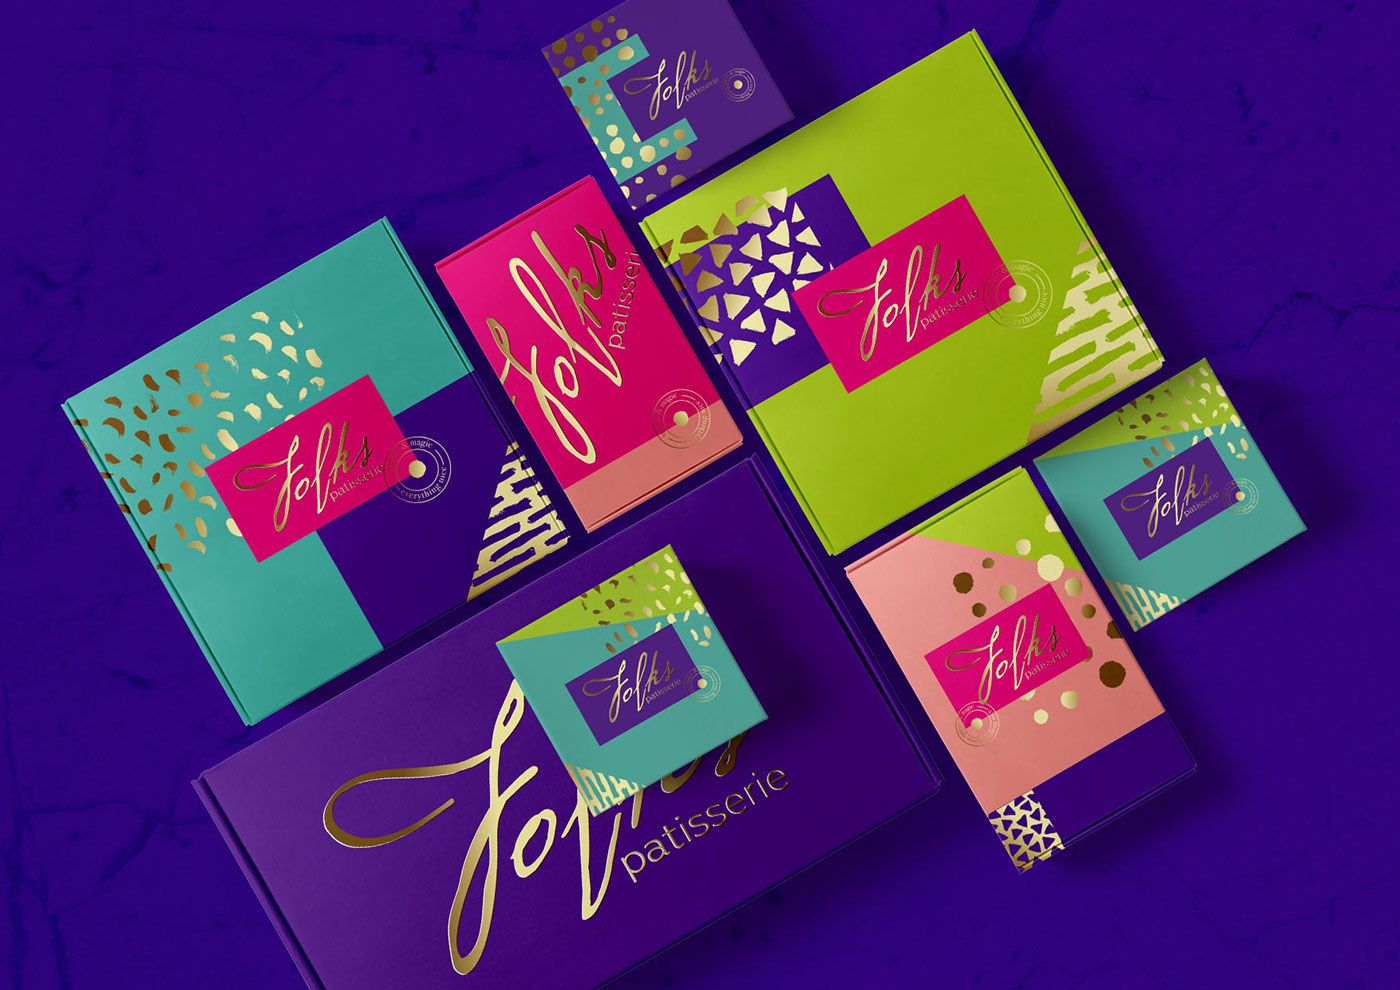 Folks Patisserie Identity and Packaging Design by Olena